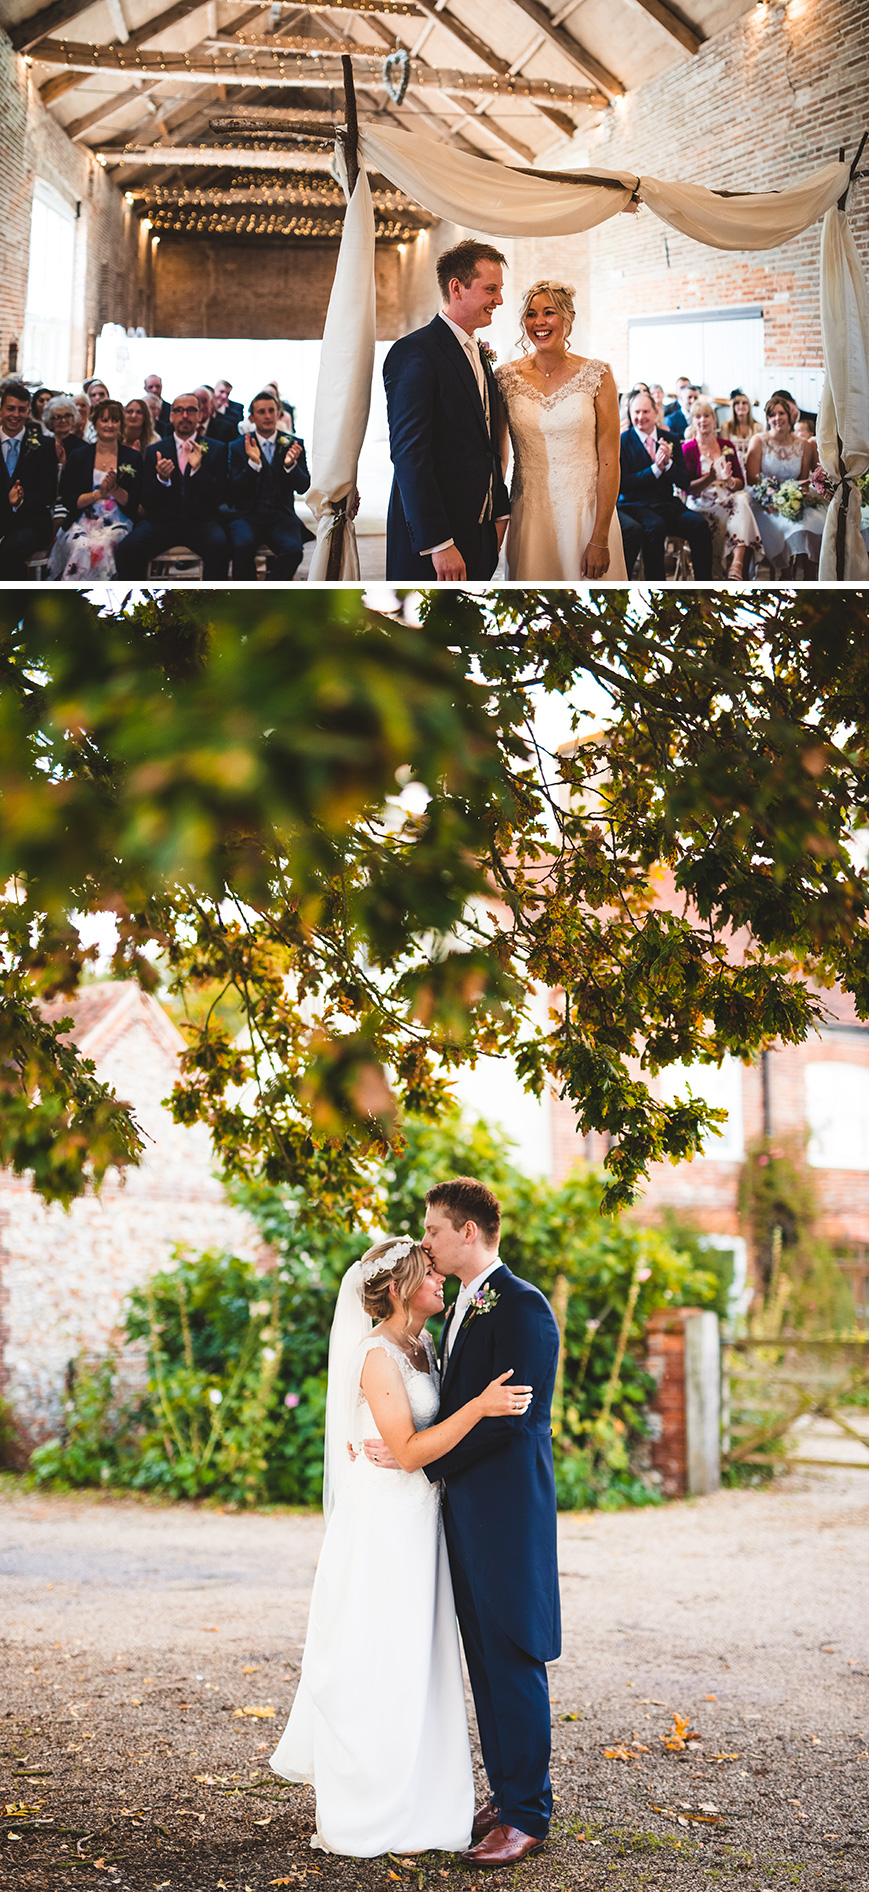 Real Wedding - Victoria and Sam's Late Summer Wedding at Manor Mews | CHWV